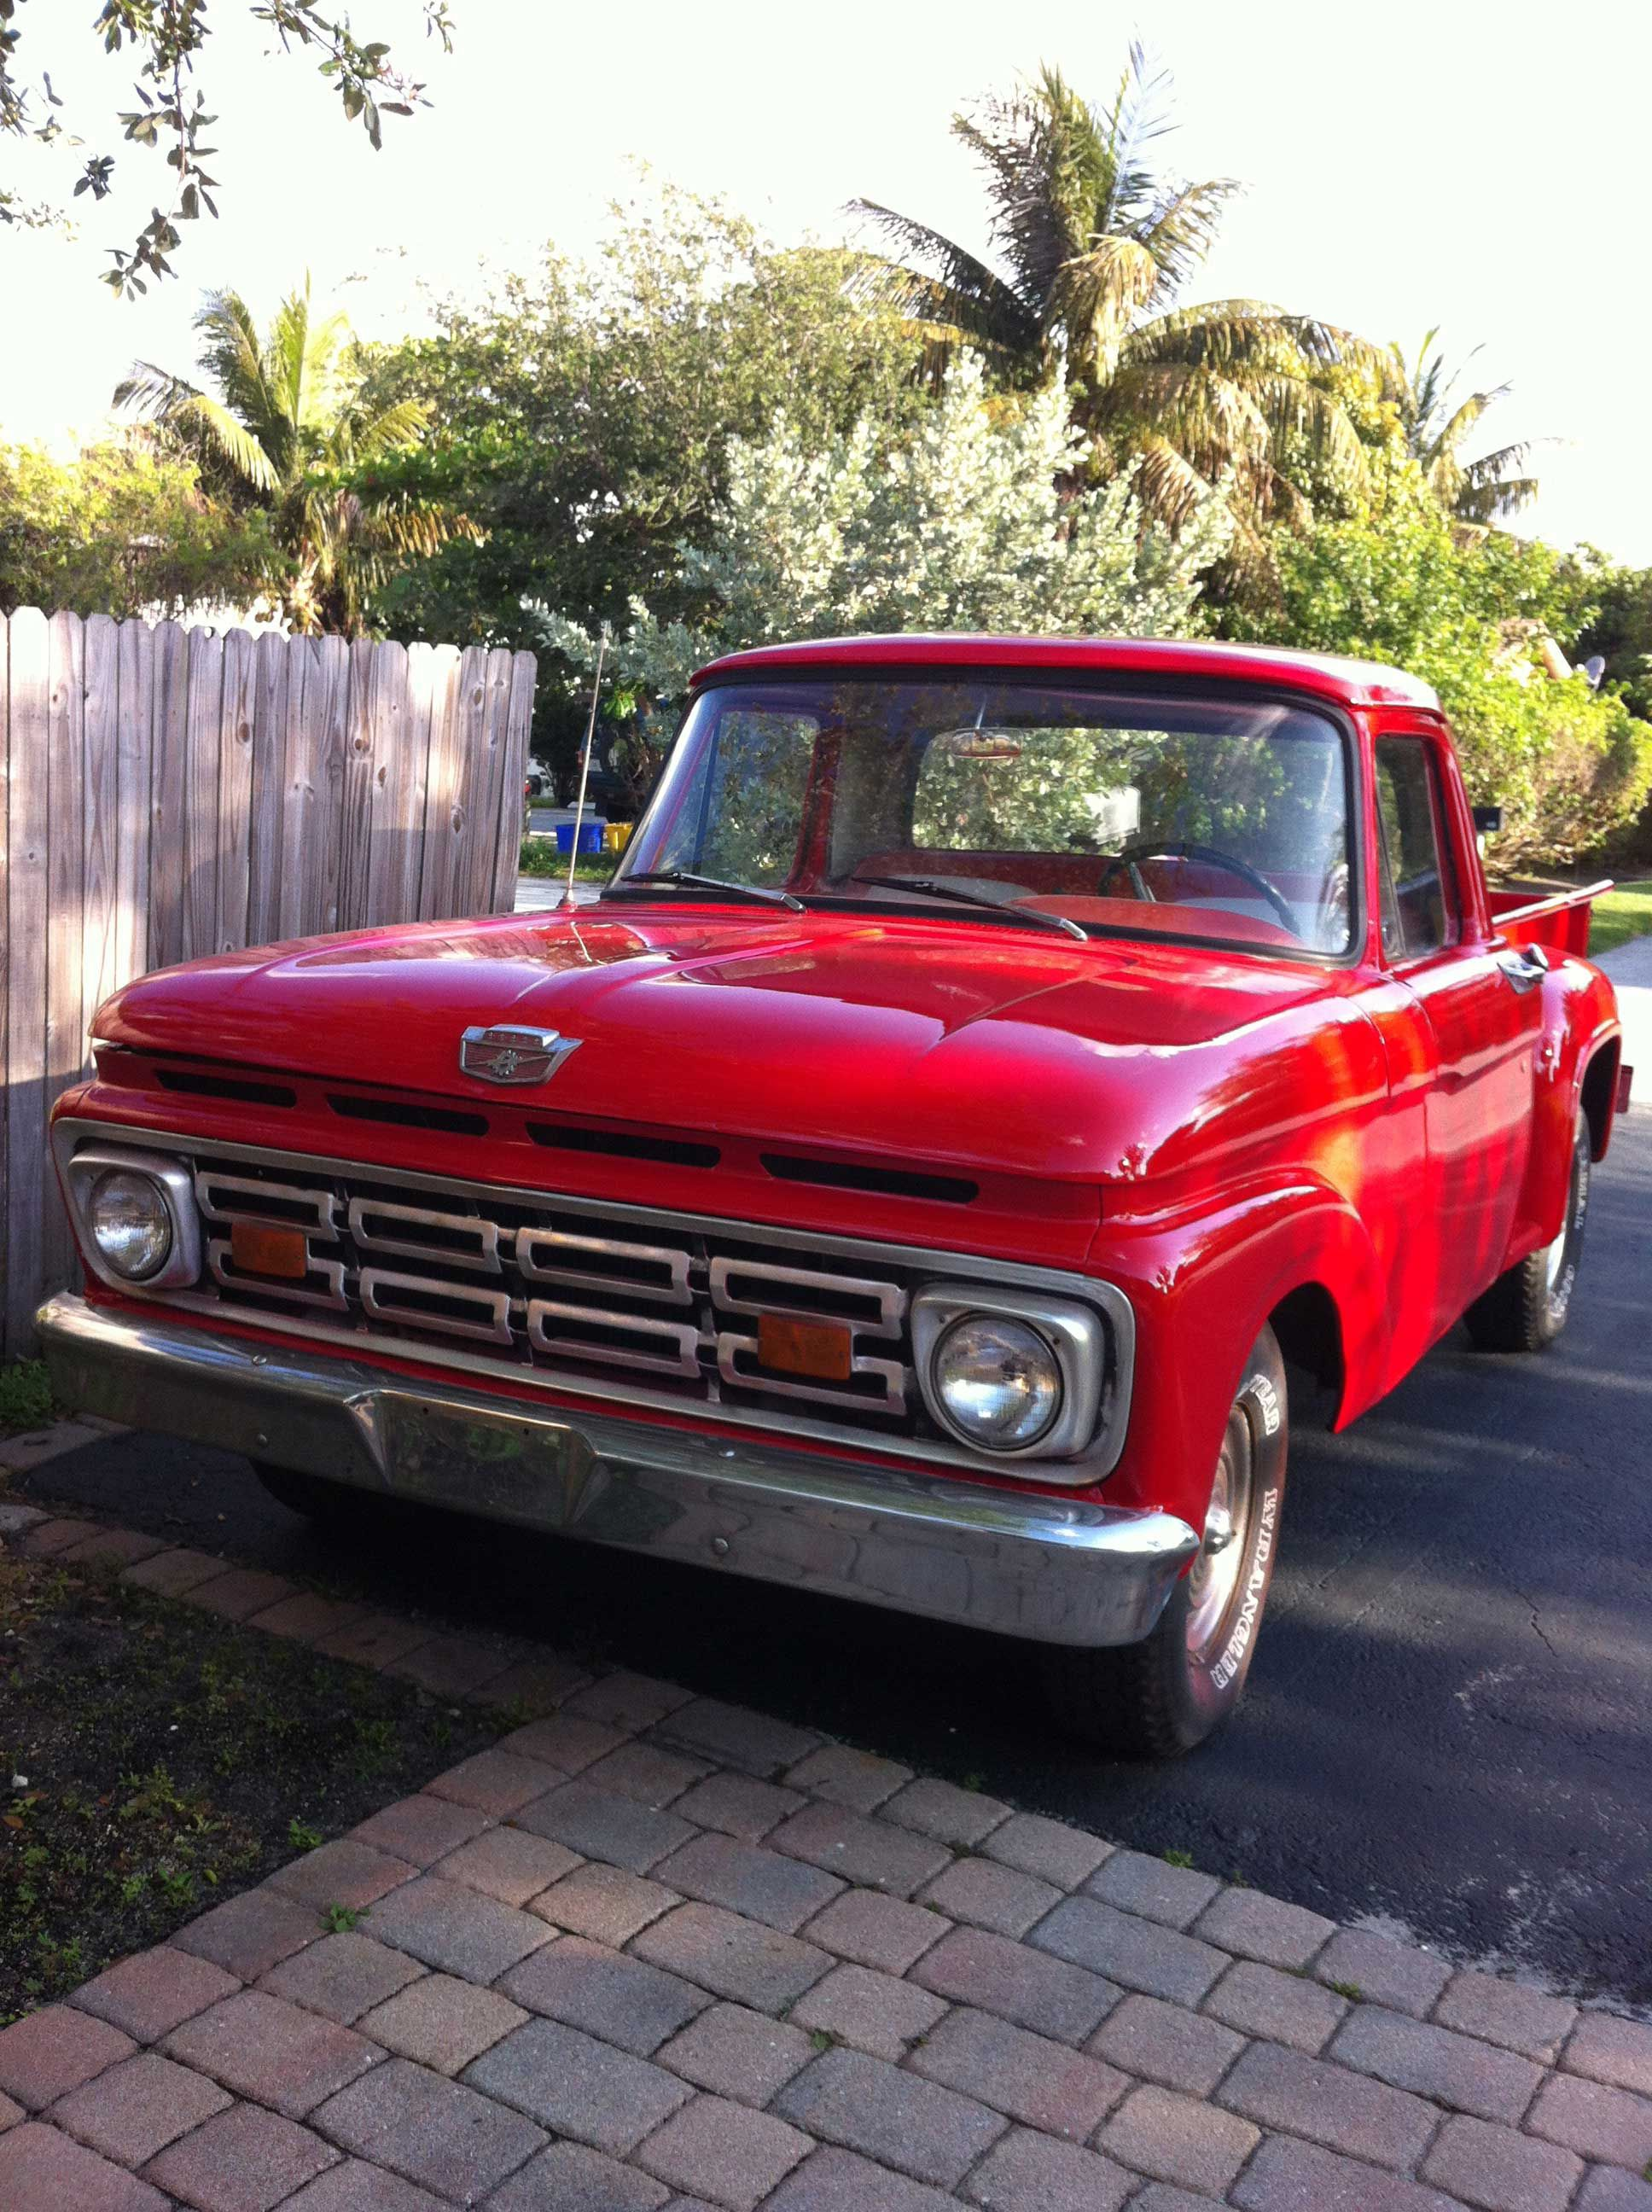 1964 Ford F100!